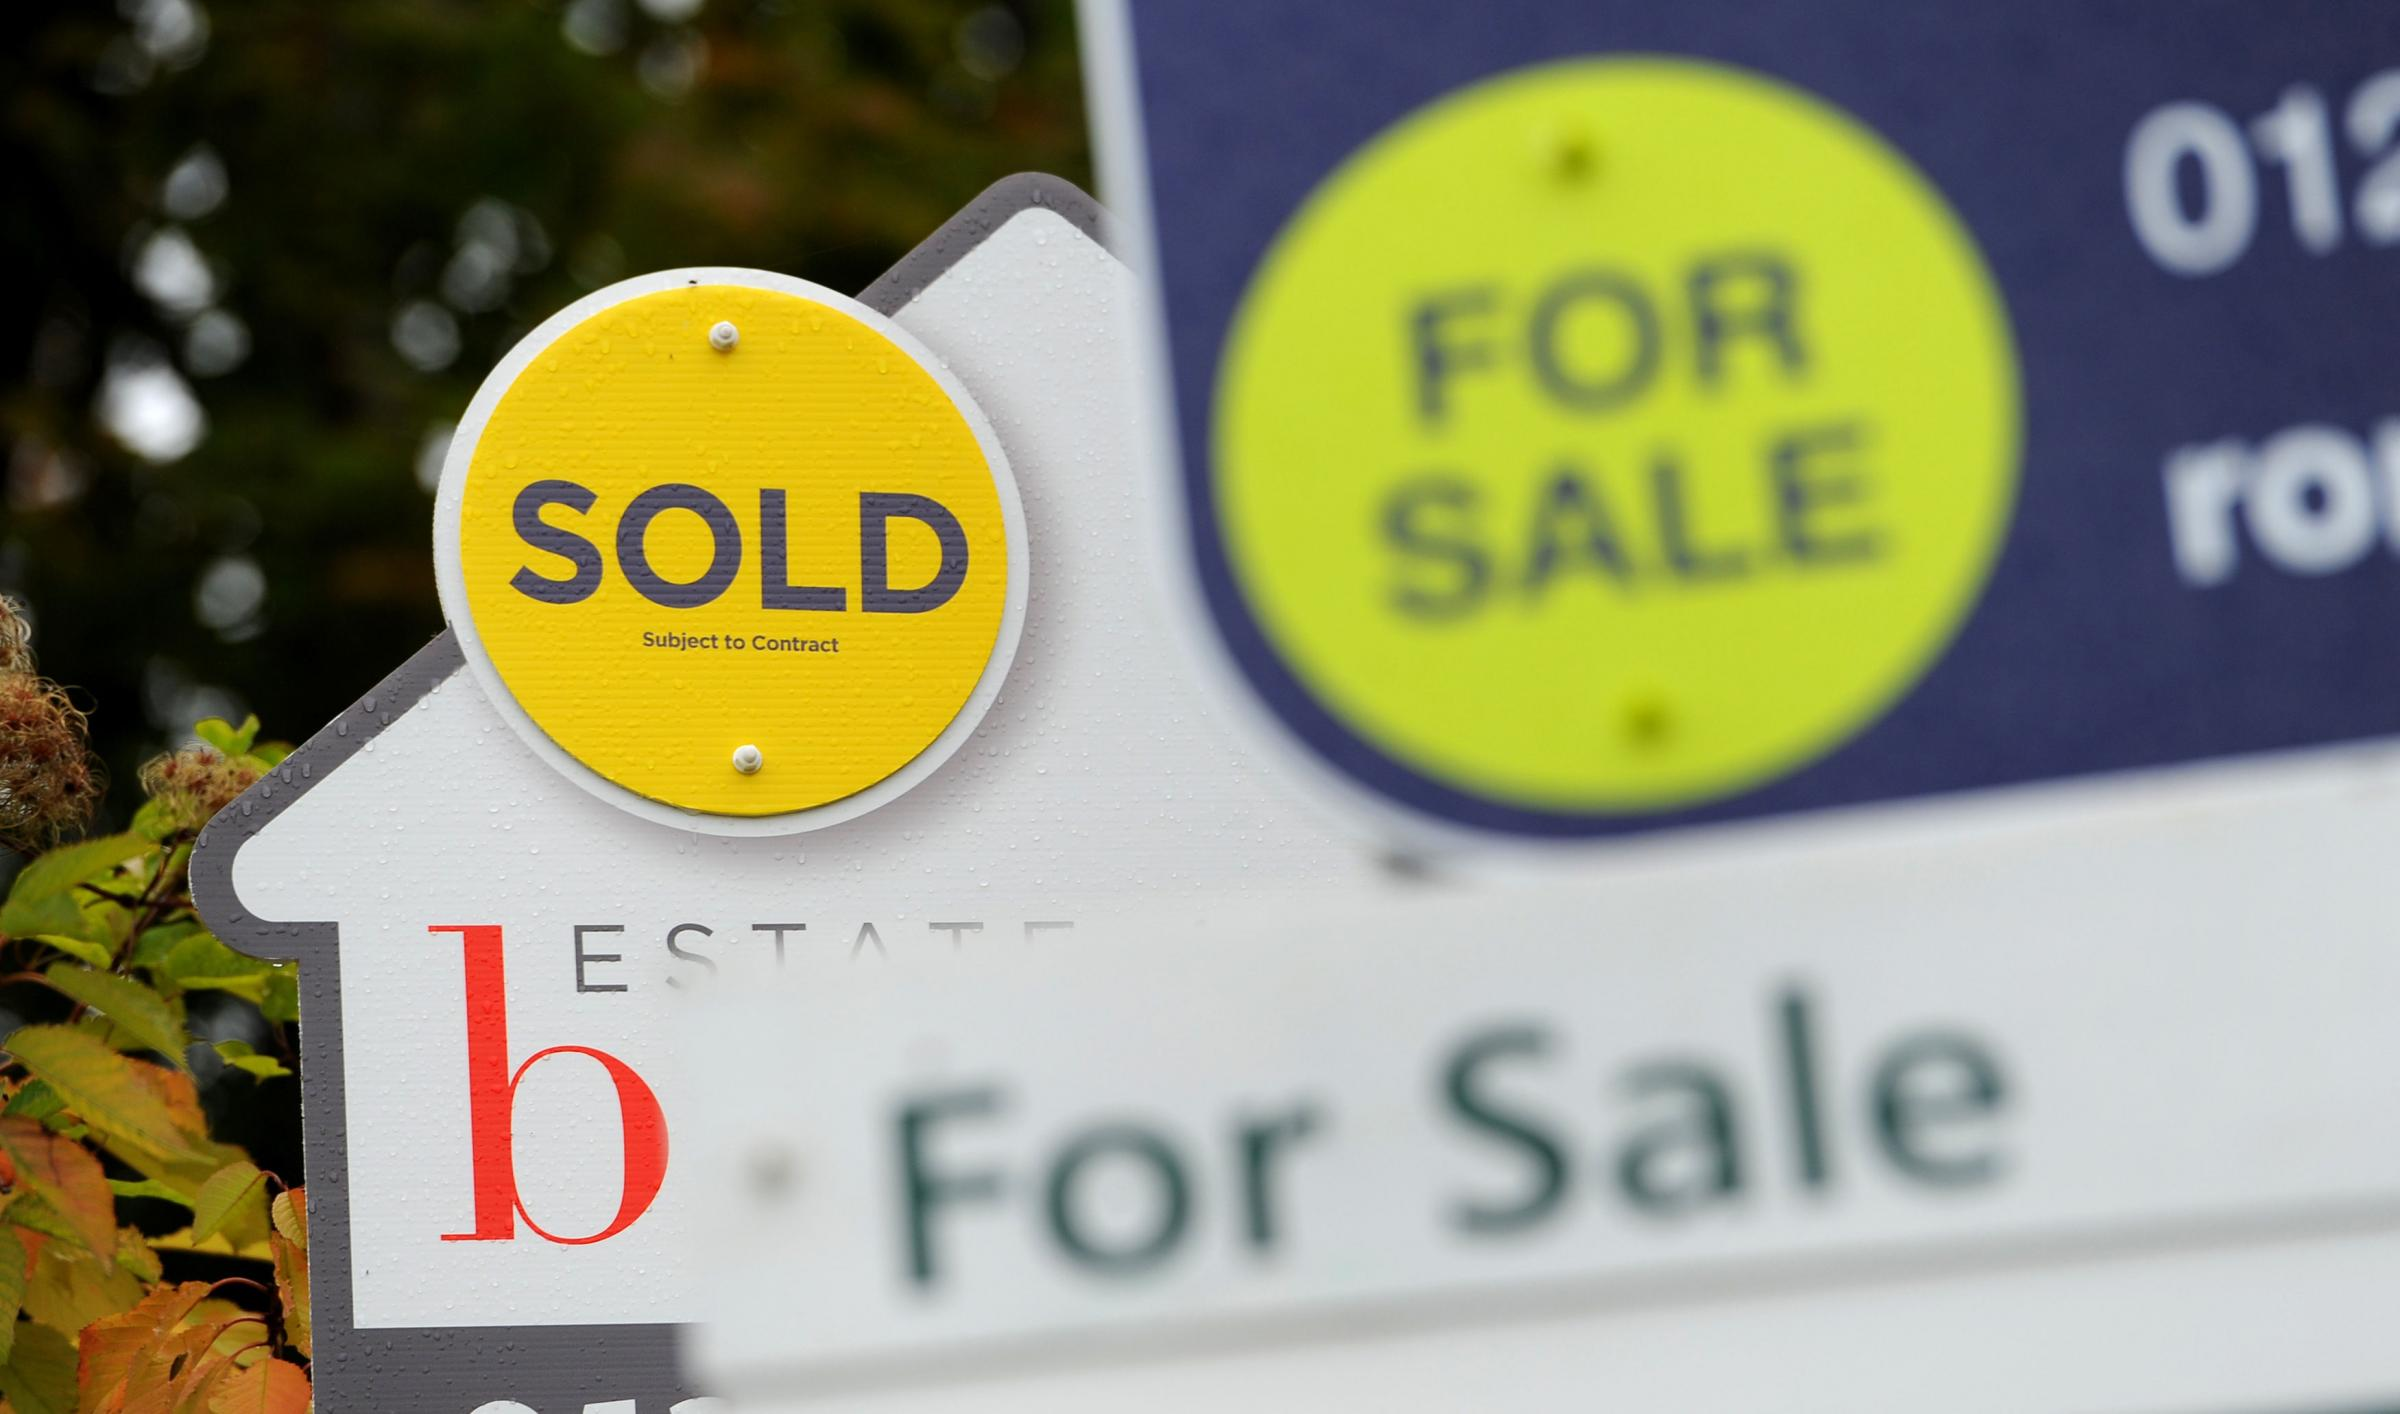 Anglesey house prices were down by 2.6% in September